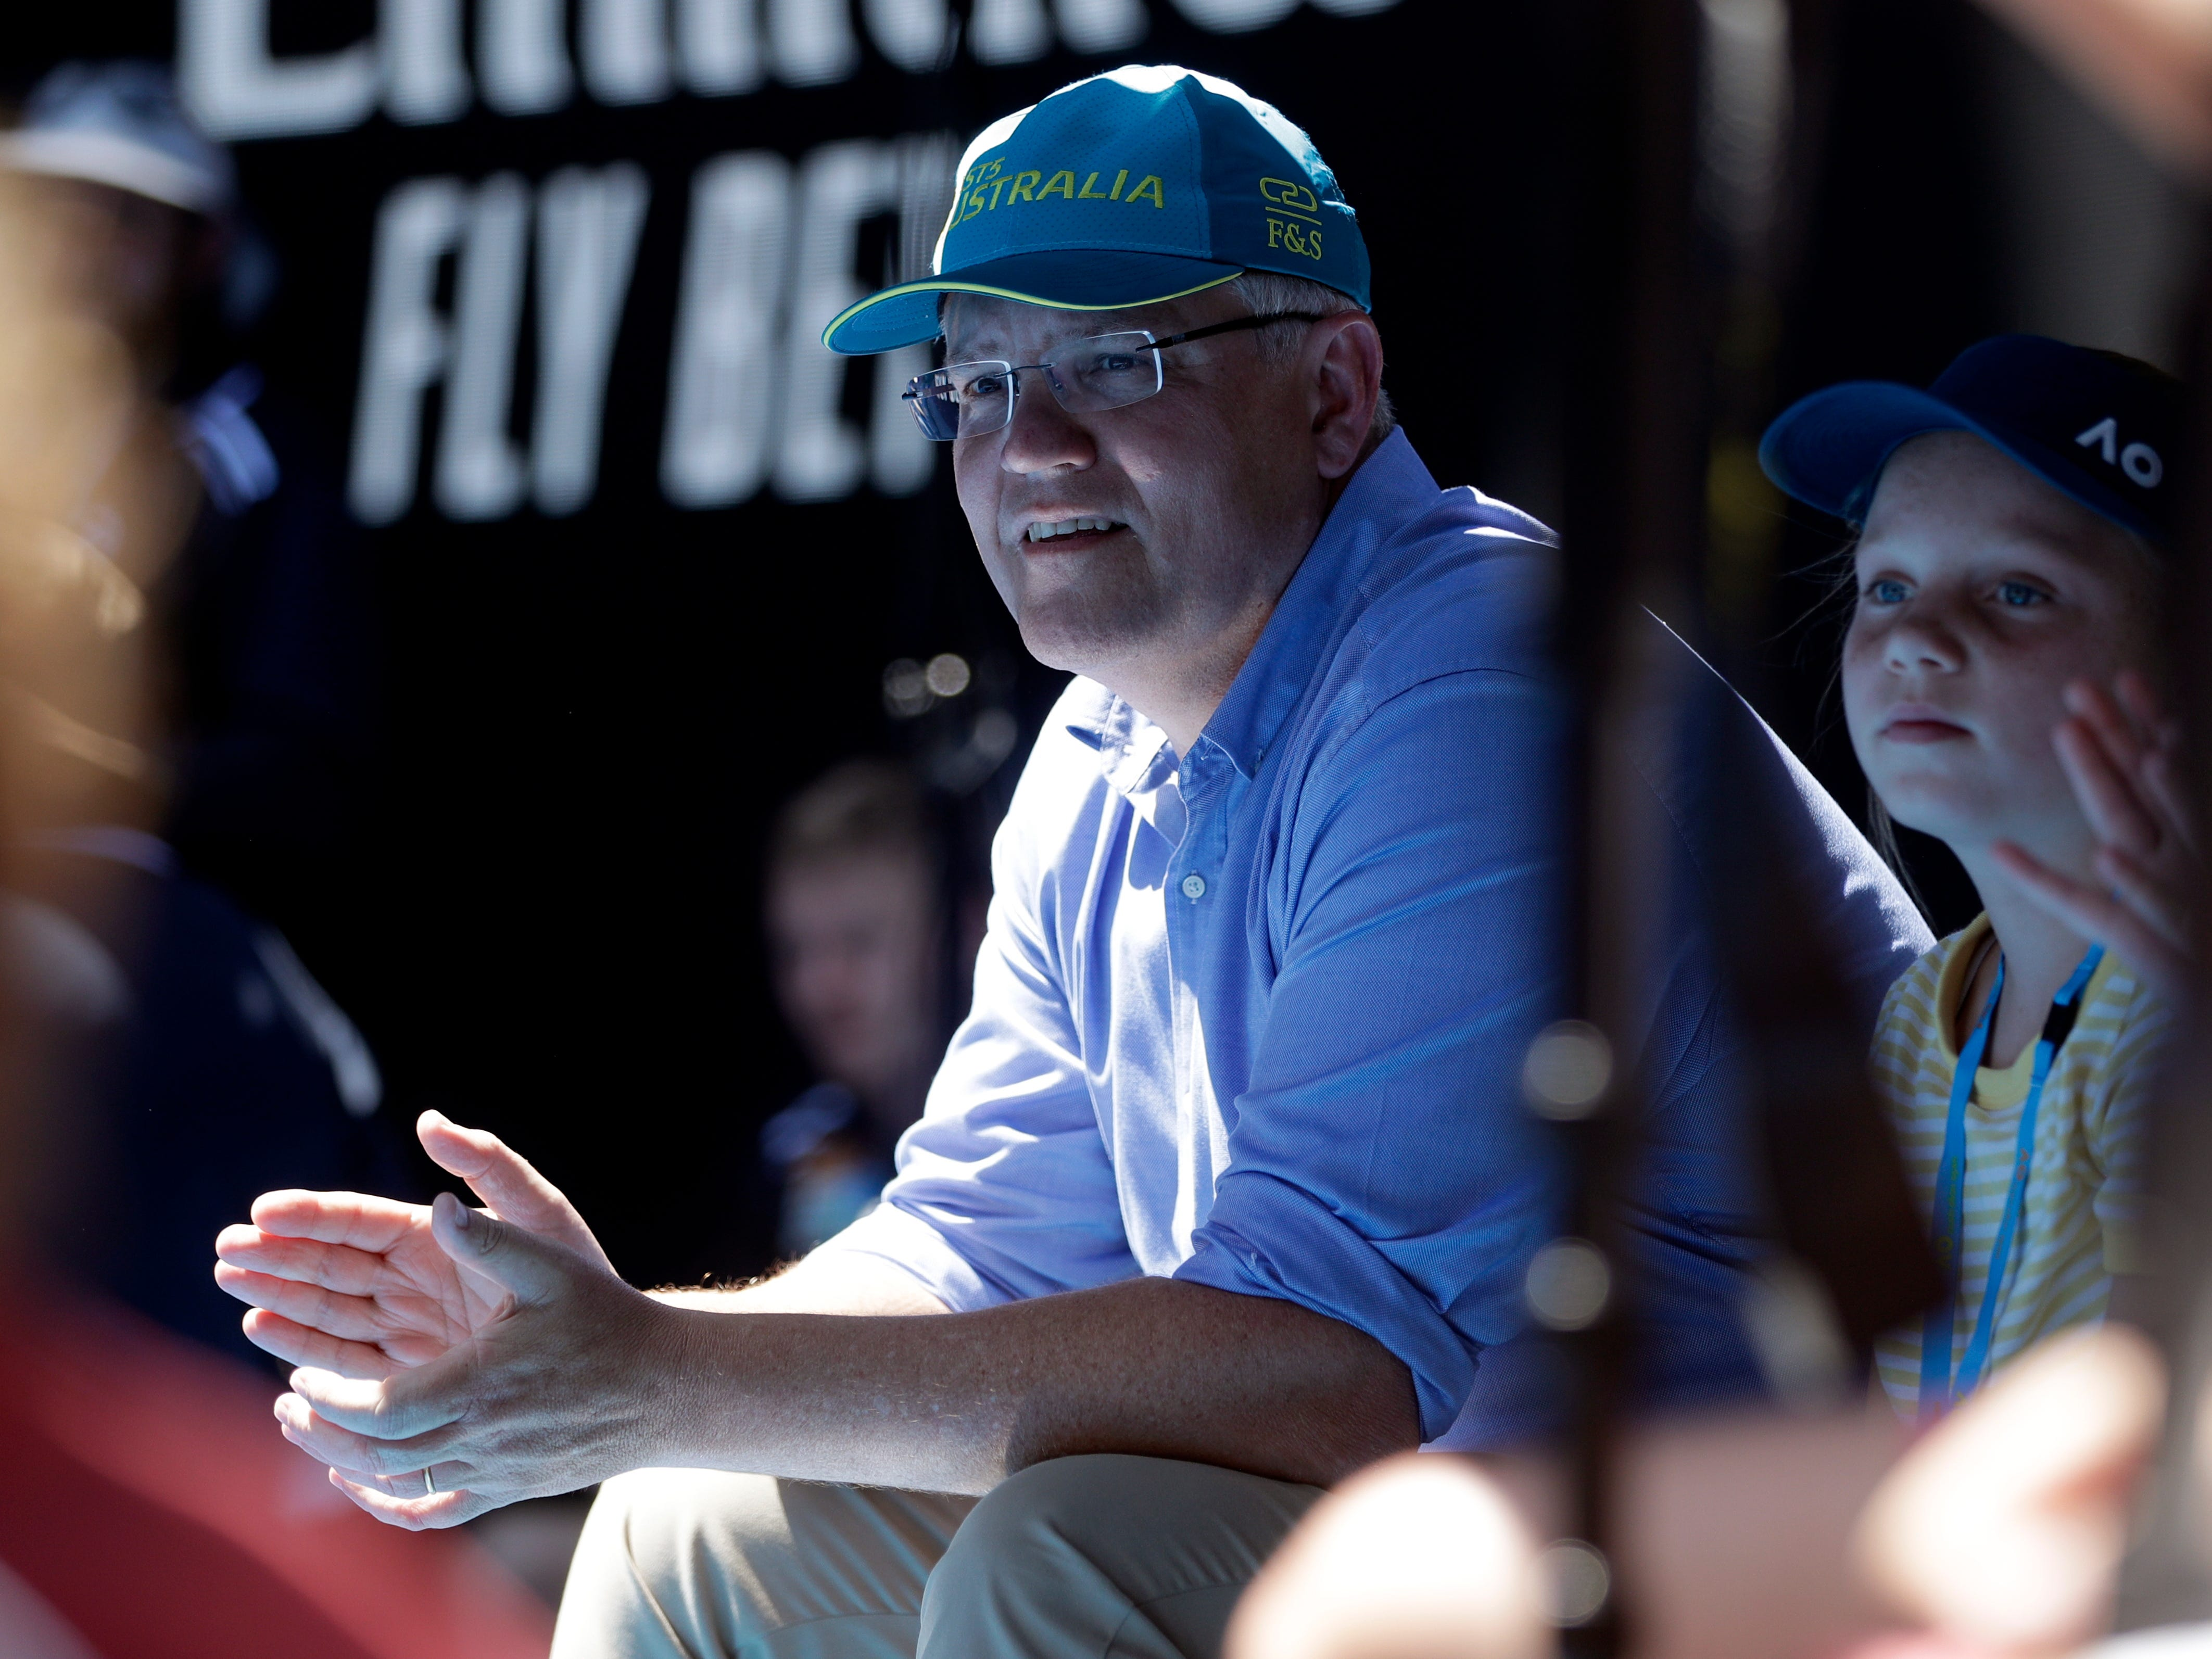 Australian Prime Minister Scott Morrison watches the fourth round match between Australia's Ashleigh Barty and Russia's Maria Sharapova.